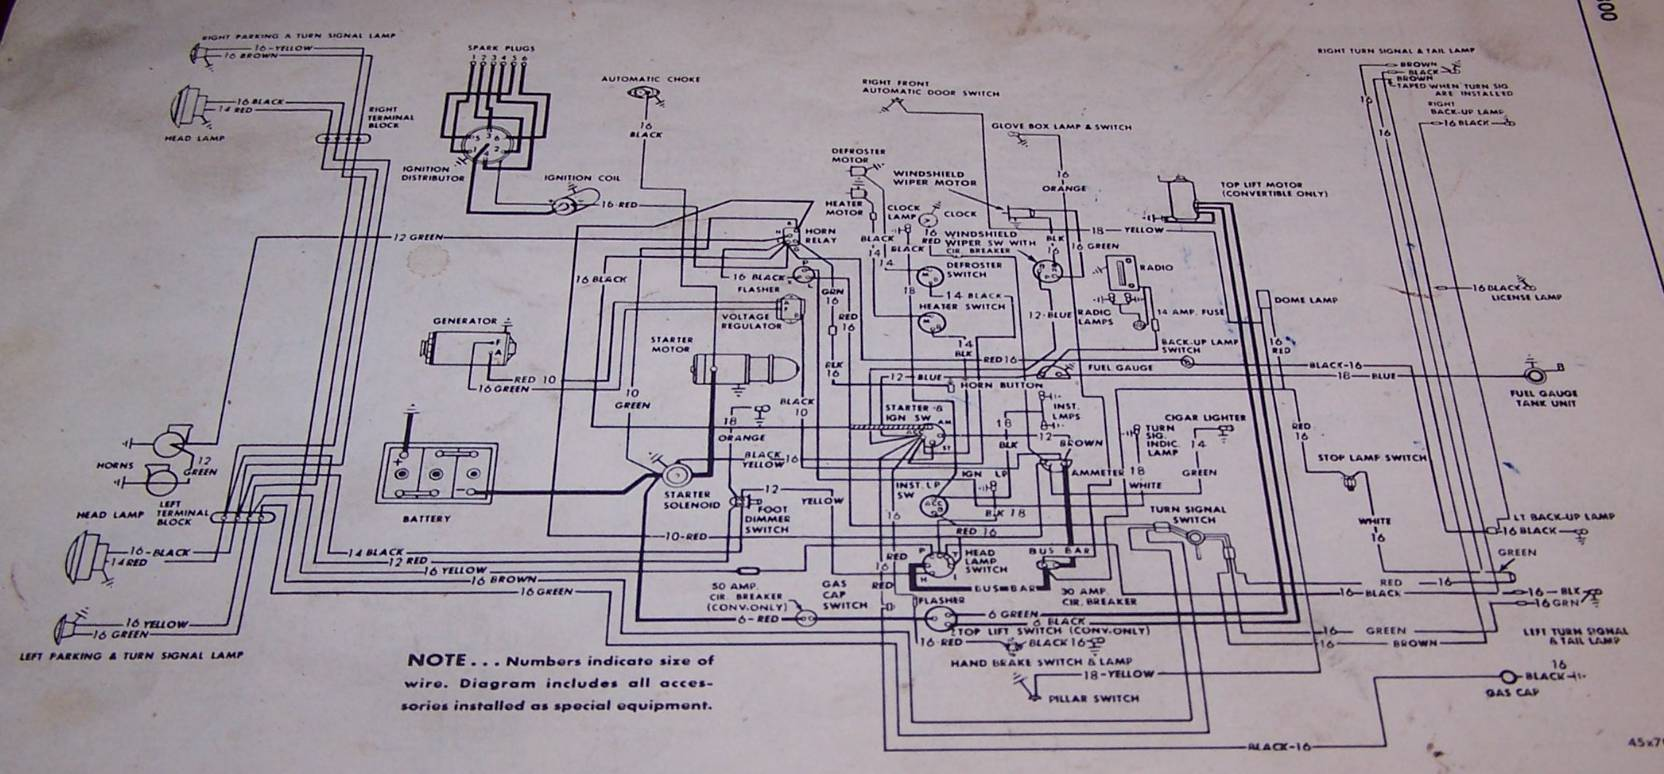 1948 Studebaker Wiring Diagram Opinions About Ford Generator 1952 Dodge Wire Electrical Schematics Rh Culturetearoom Com 1928